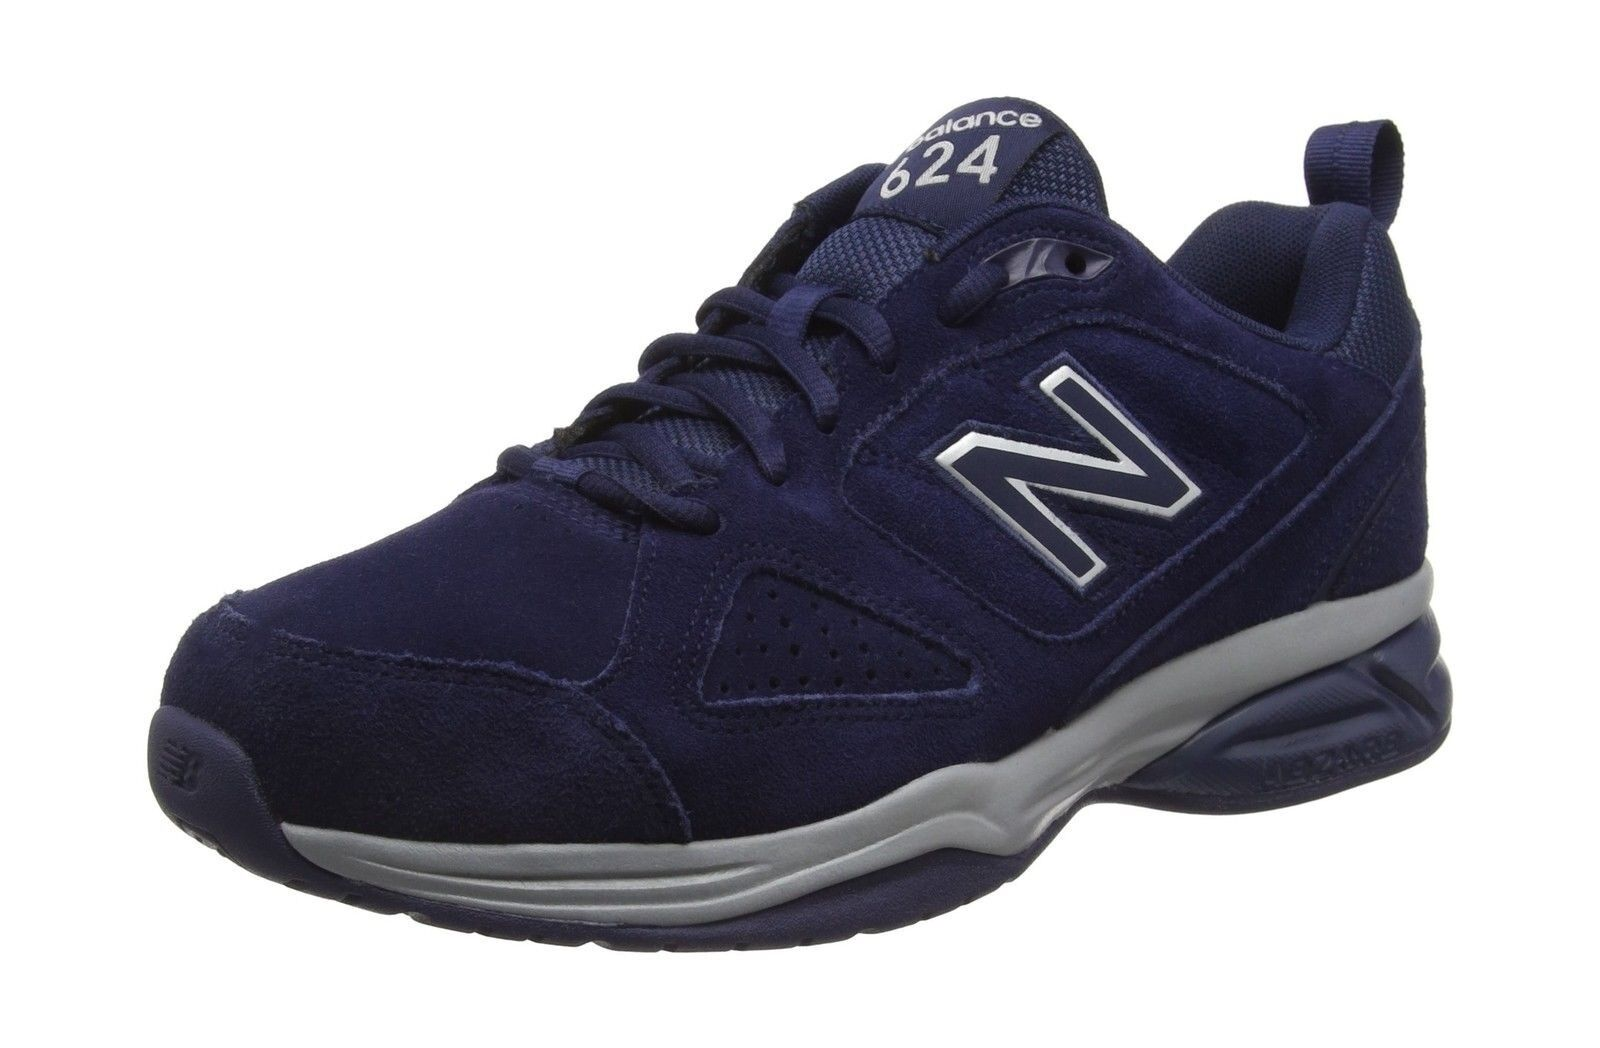 New Balance Men's MX624NV4 Navy Suede 4E Wide Trainers